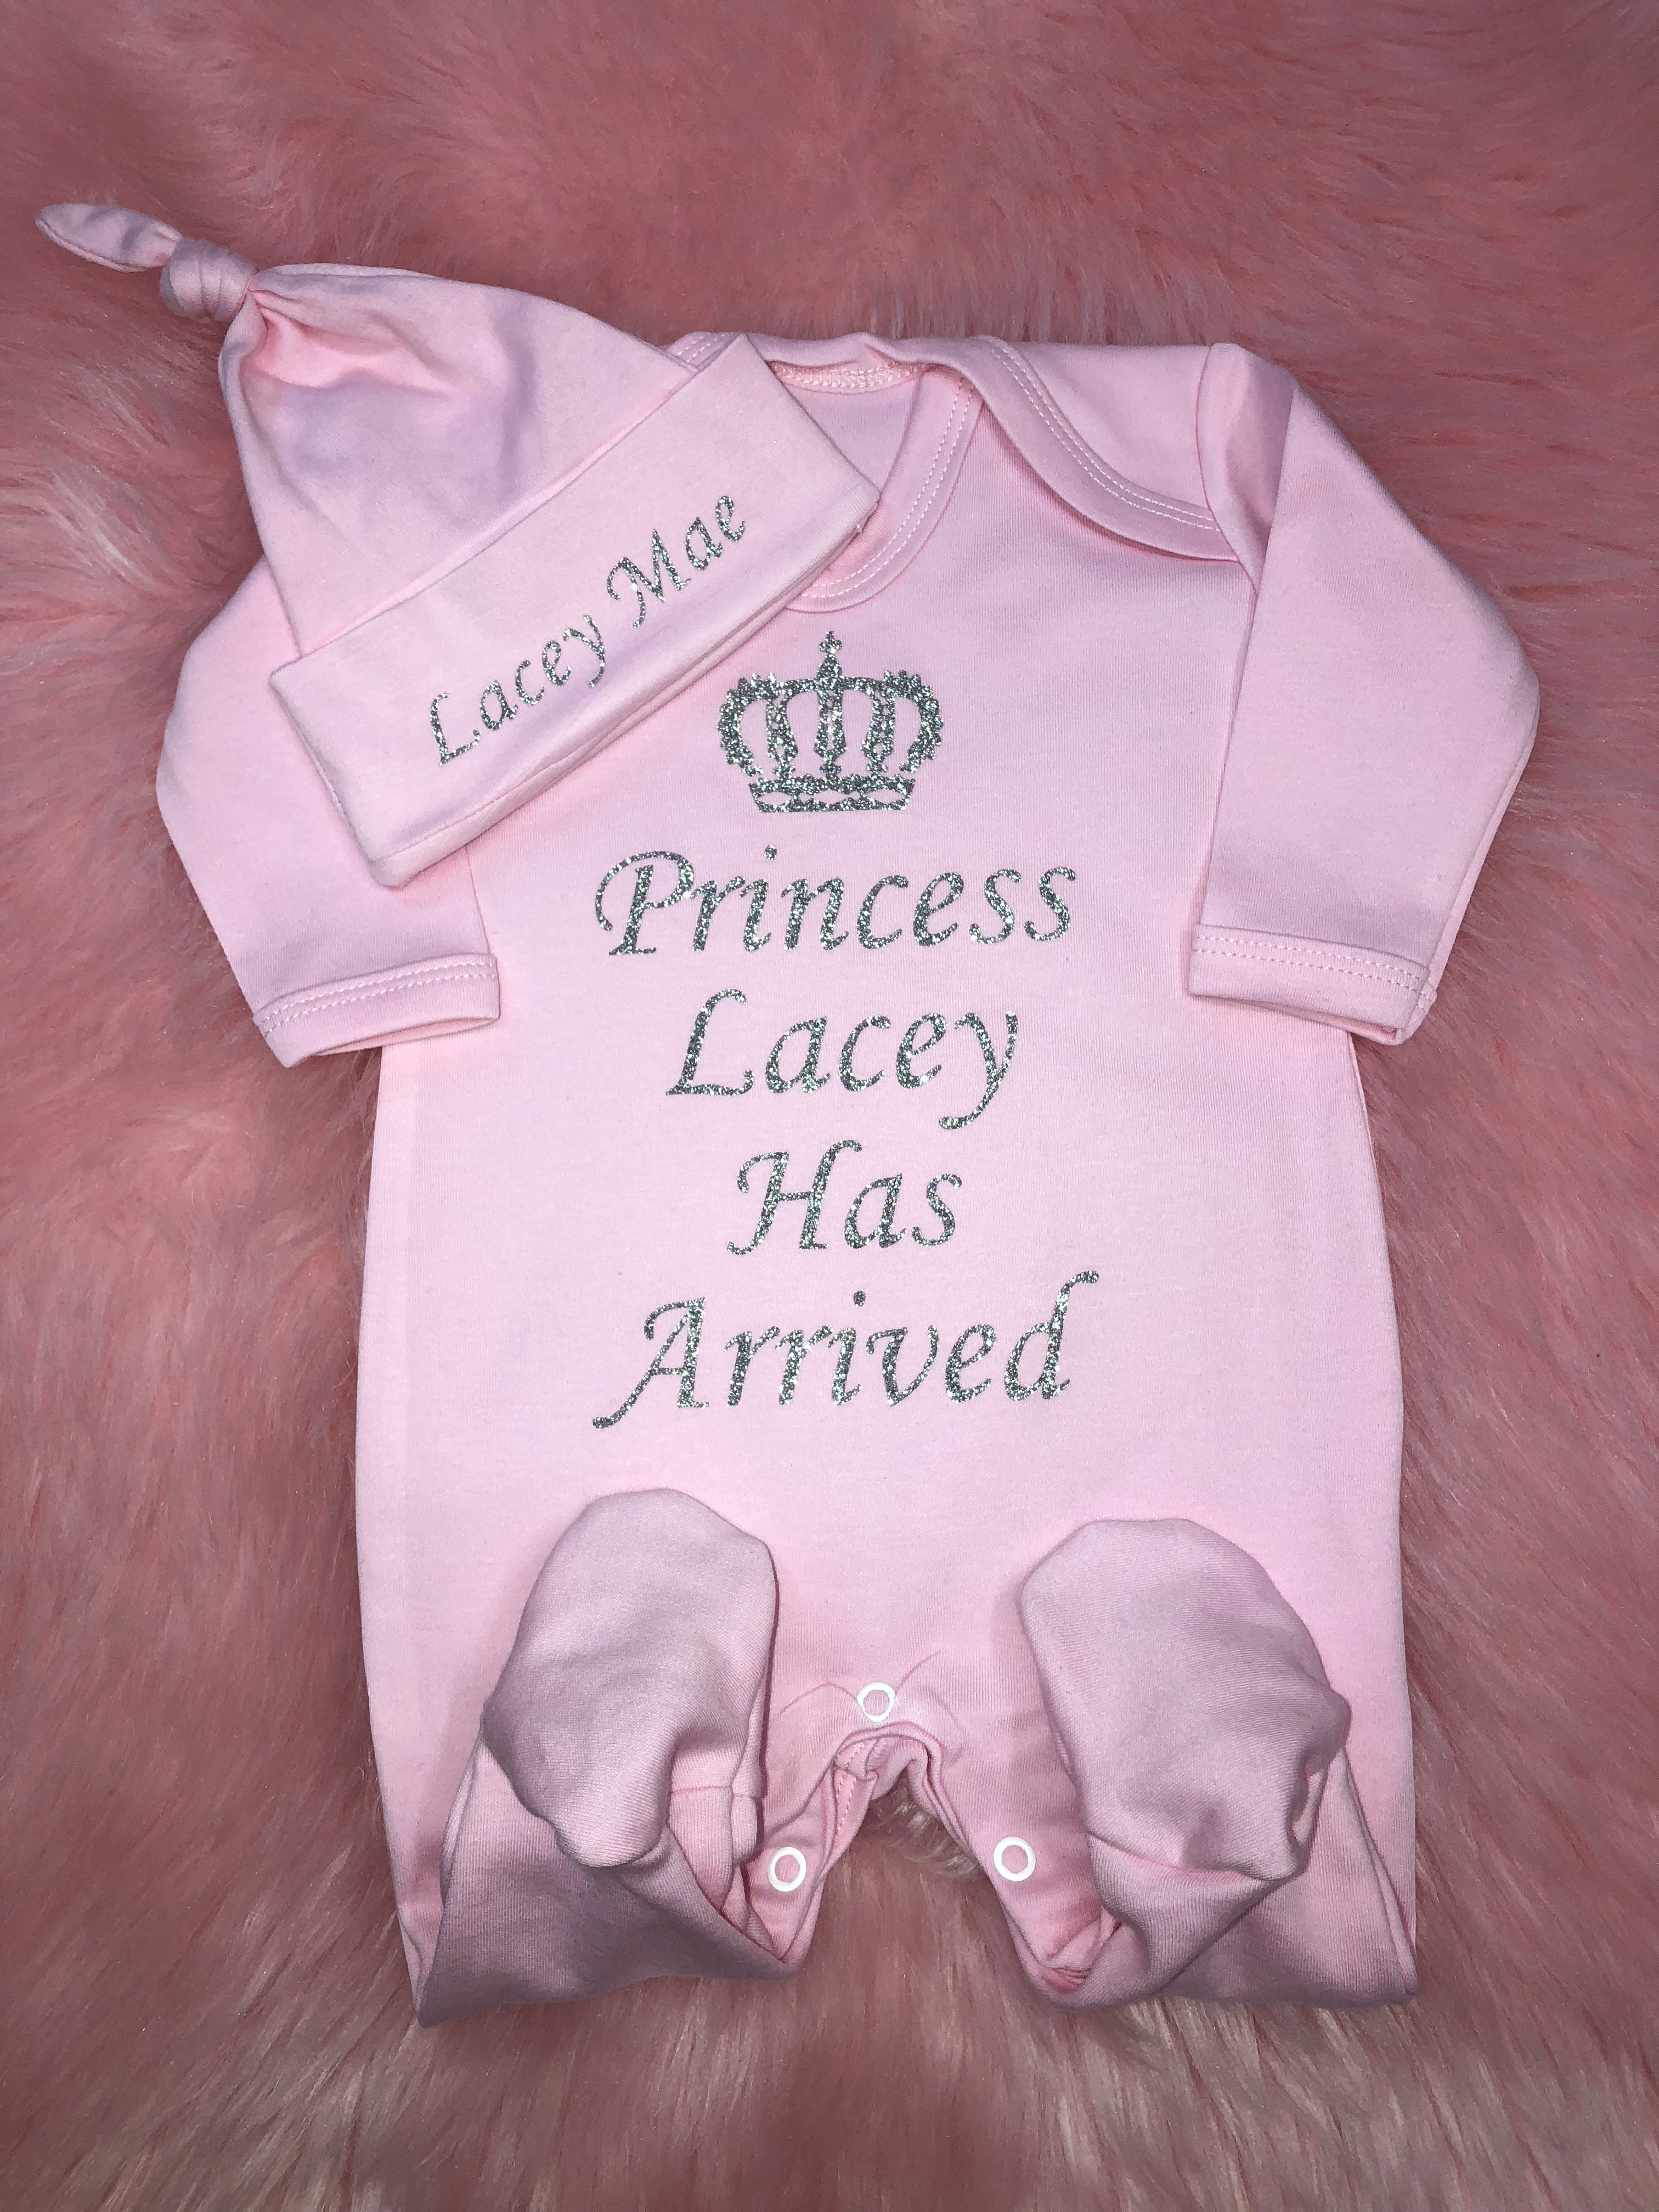 fe741b30e53 Our adorable personalised baby grow and hat sets feature a royal  Prince     Princess   personalisation! The perfect baby arrival outfit!